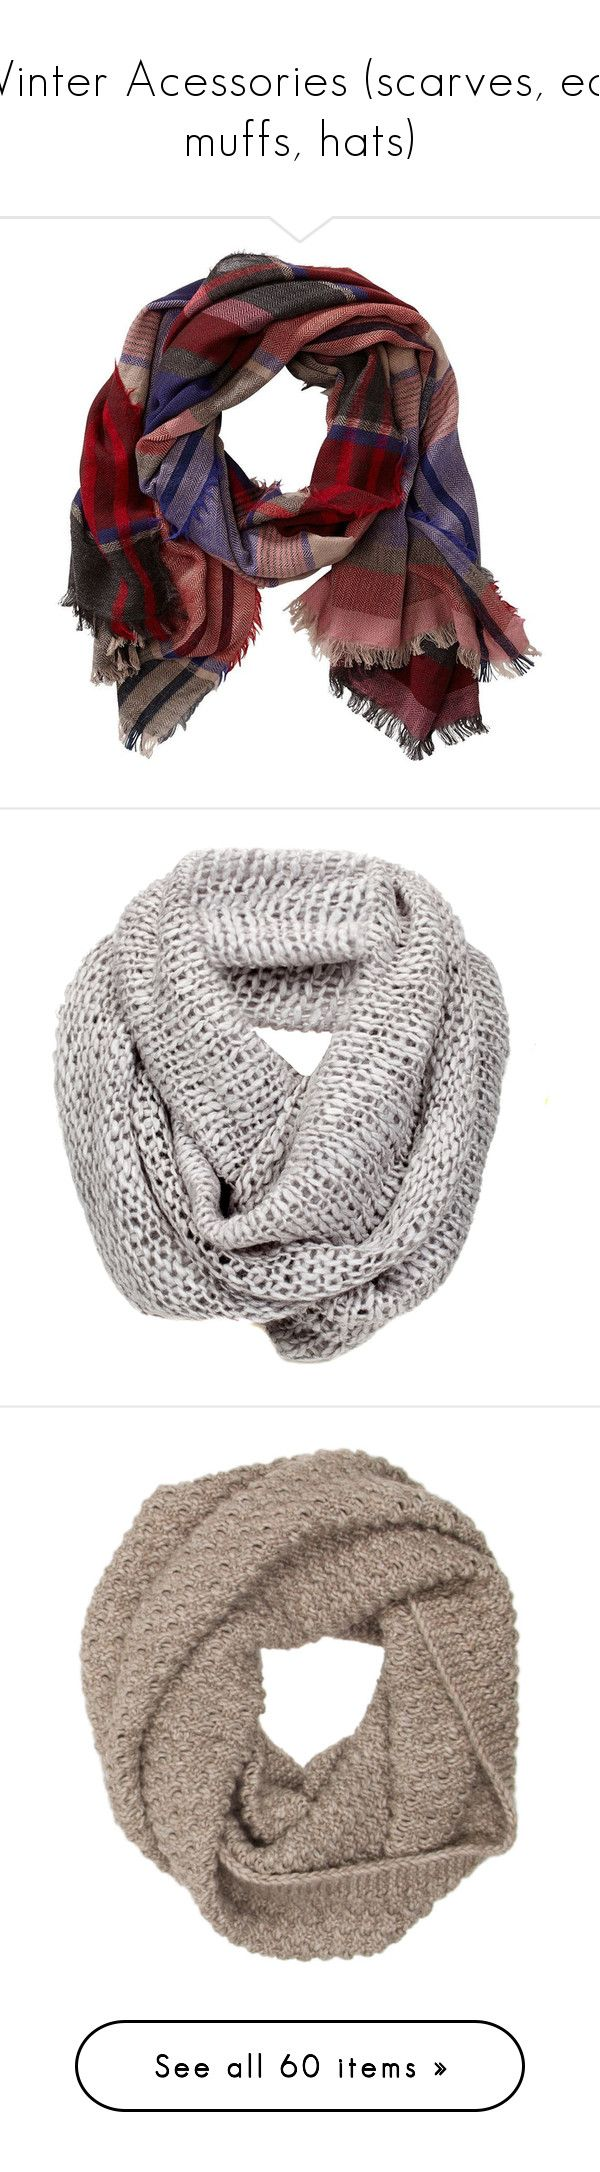 """""""Winter Acessories (scarves, ear muffs, hats)"""" by katie-1111 on Polyvore featuring accessories, scarves, red plaid, patterned scarves, print scarves, tartan plaid scarves, striped shawl, tartan plaid shawl, other and accessories - scarves"""